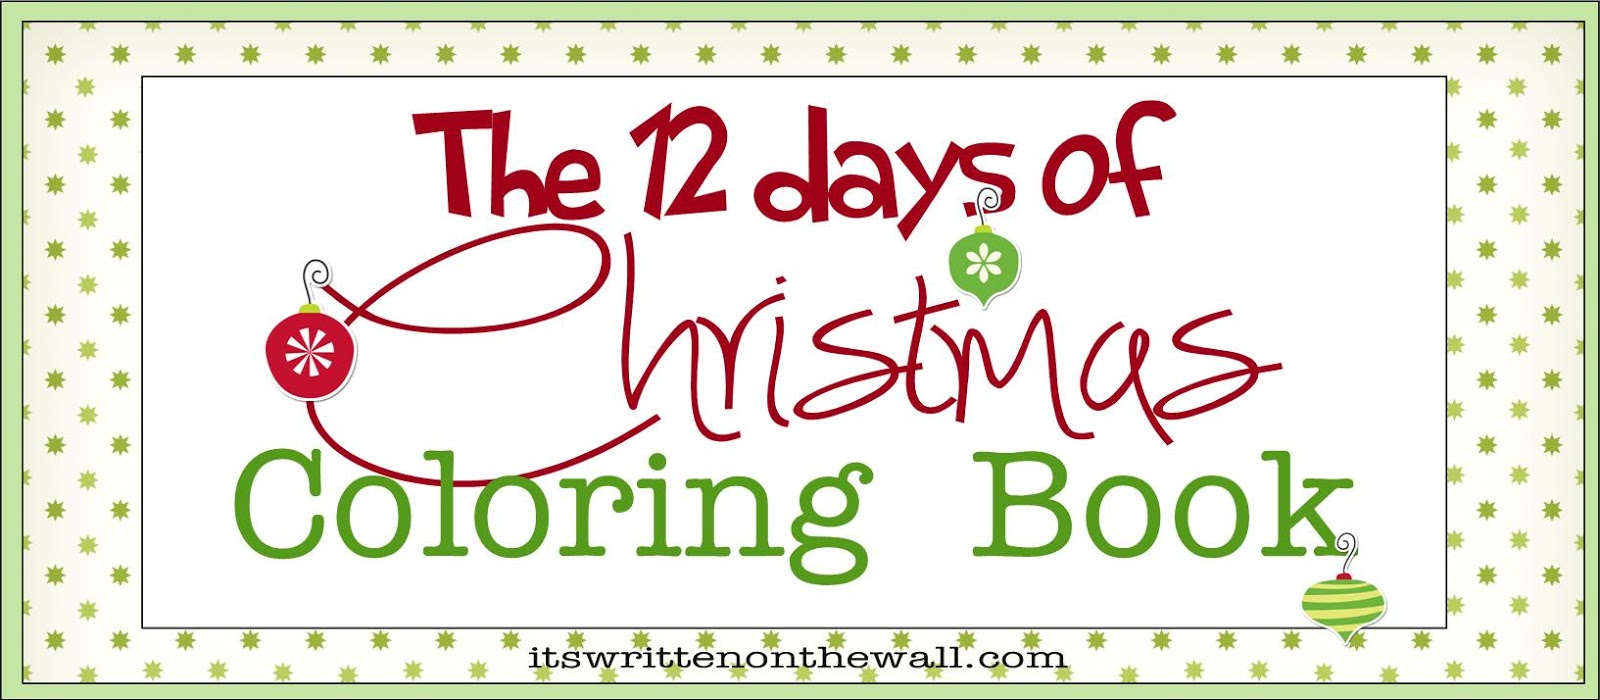 Coloring book pages for christmas -  Freebie Christmas Coloring Book 12 Days Of Christmas For The Kids